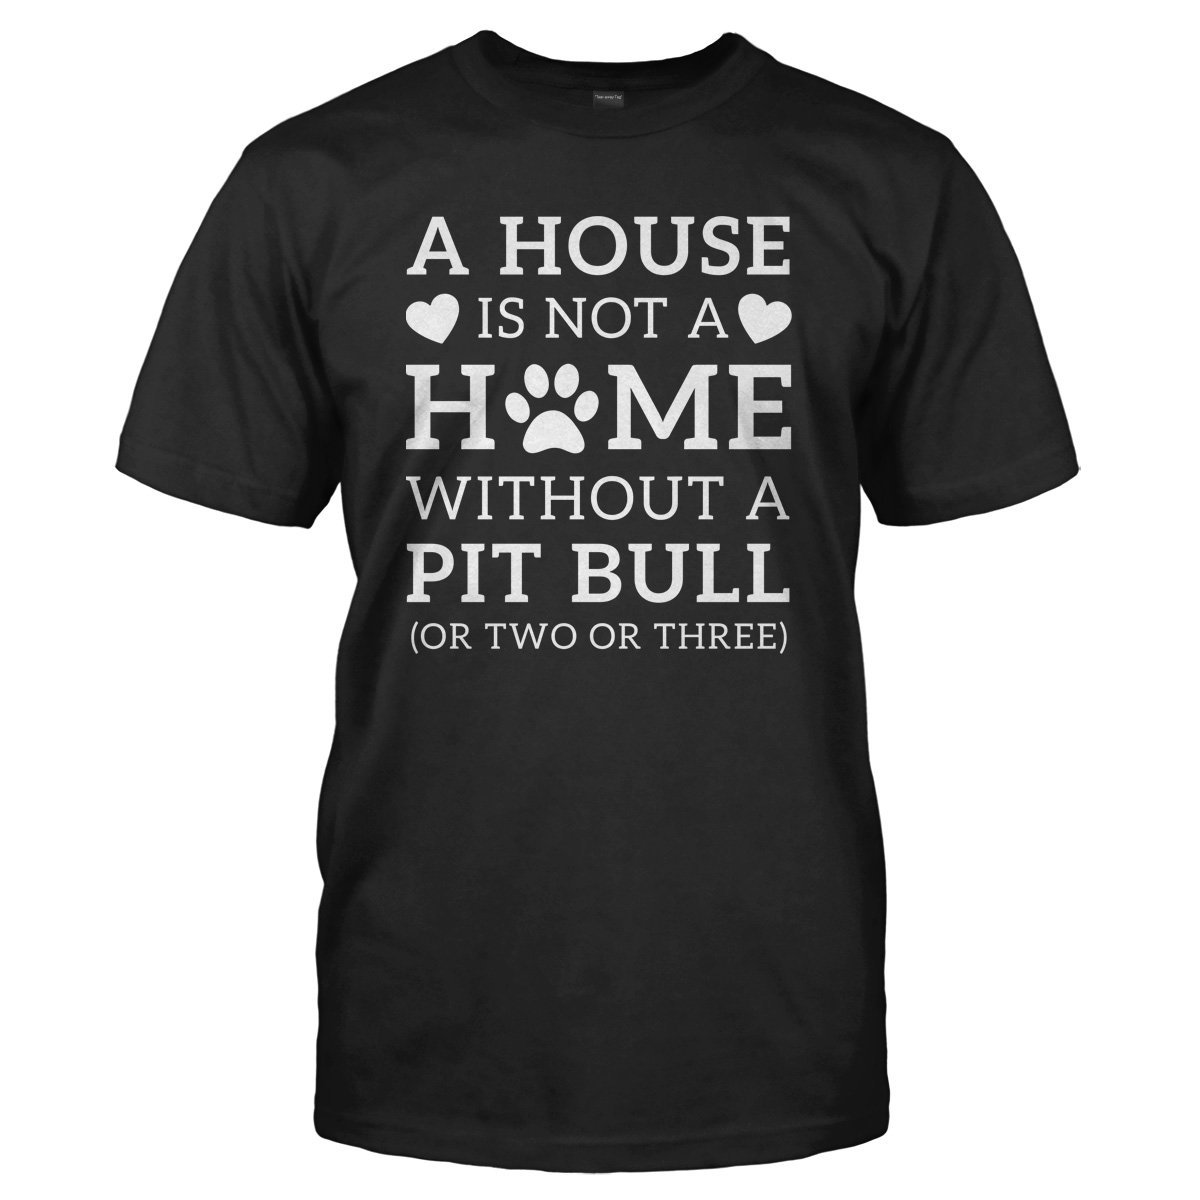 A House Is Not a Home Without a Pit Bull (Or Two or Three) - T Shirt